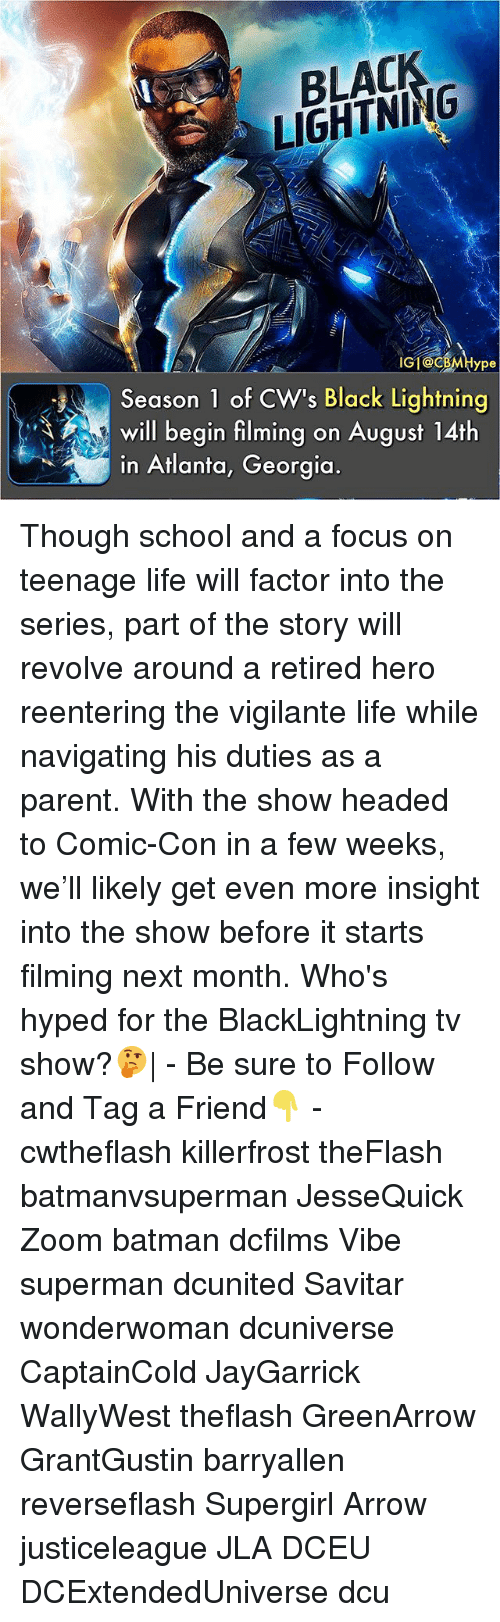 Vigilante: BLAC  LIGHTNING  Ype  Season 1 of CW's Black Lightning  will begin filming on August 14th  in Atlanta, Georgia. Though school and a focus on teenage life will factor into the series, part of the story will revolve around a retired hero reentering the vigilante life while navigating his duties as a parent. With the show headed to Comic-Con in a few weeks, we'll likely get even more insight into the show before it starts filming next month. Who's hyped for the BlackLightning tv show?🤔| - Be sure to Follow and Tag a Friend👇 - cwtheflash killerfrost theFlash batmanvsuperman JesseQuick Zoom batman dcfilms Vibe superman dcunited Savitar wonderwoman dcuniverse CaptainCold JayGarrick WallyWest theflash GreenArrow GrantGustin barryallen reverseflash Supergirl Arrow justiceleague JLA DCEU DCExtendedUniverse dcu